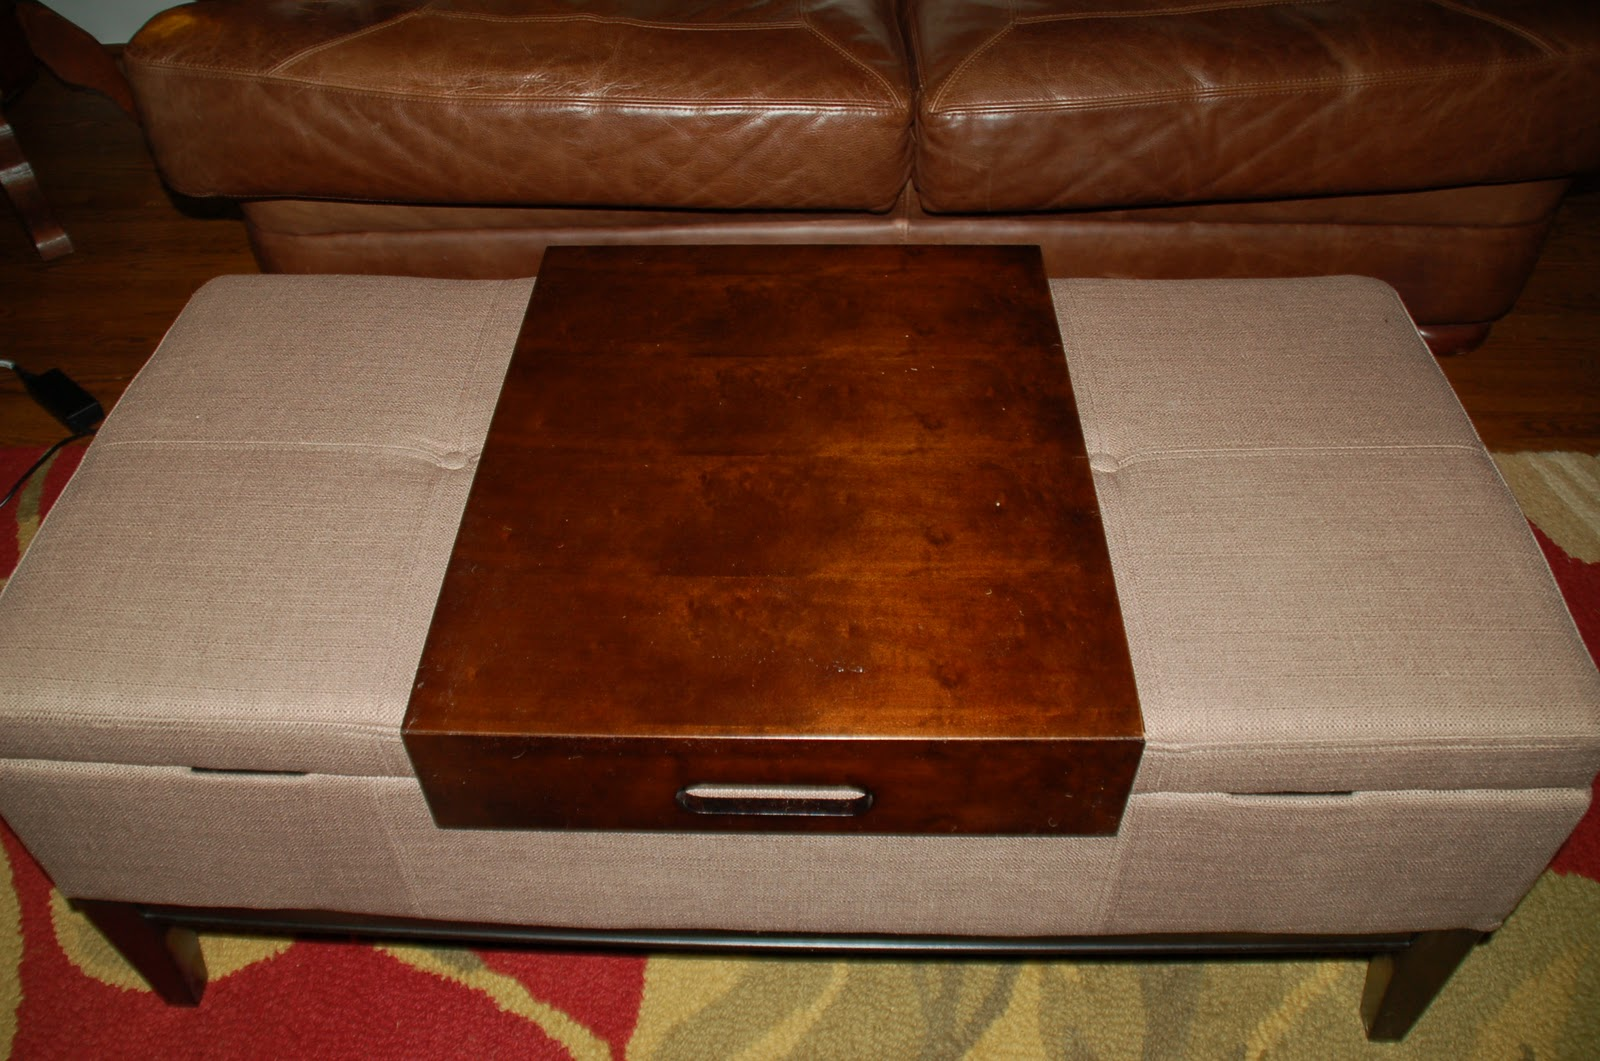 Thrifty Finds And Redesigns Ottoman Coffee Tables